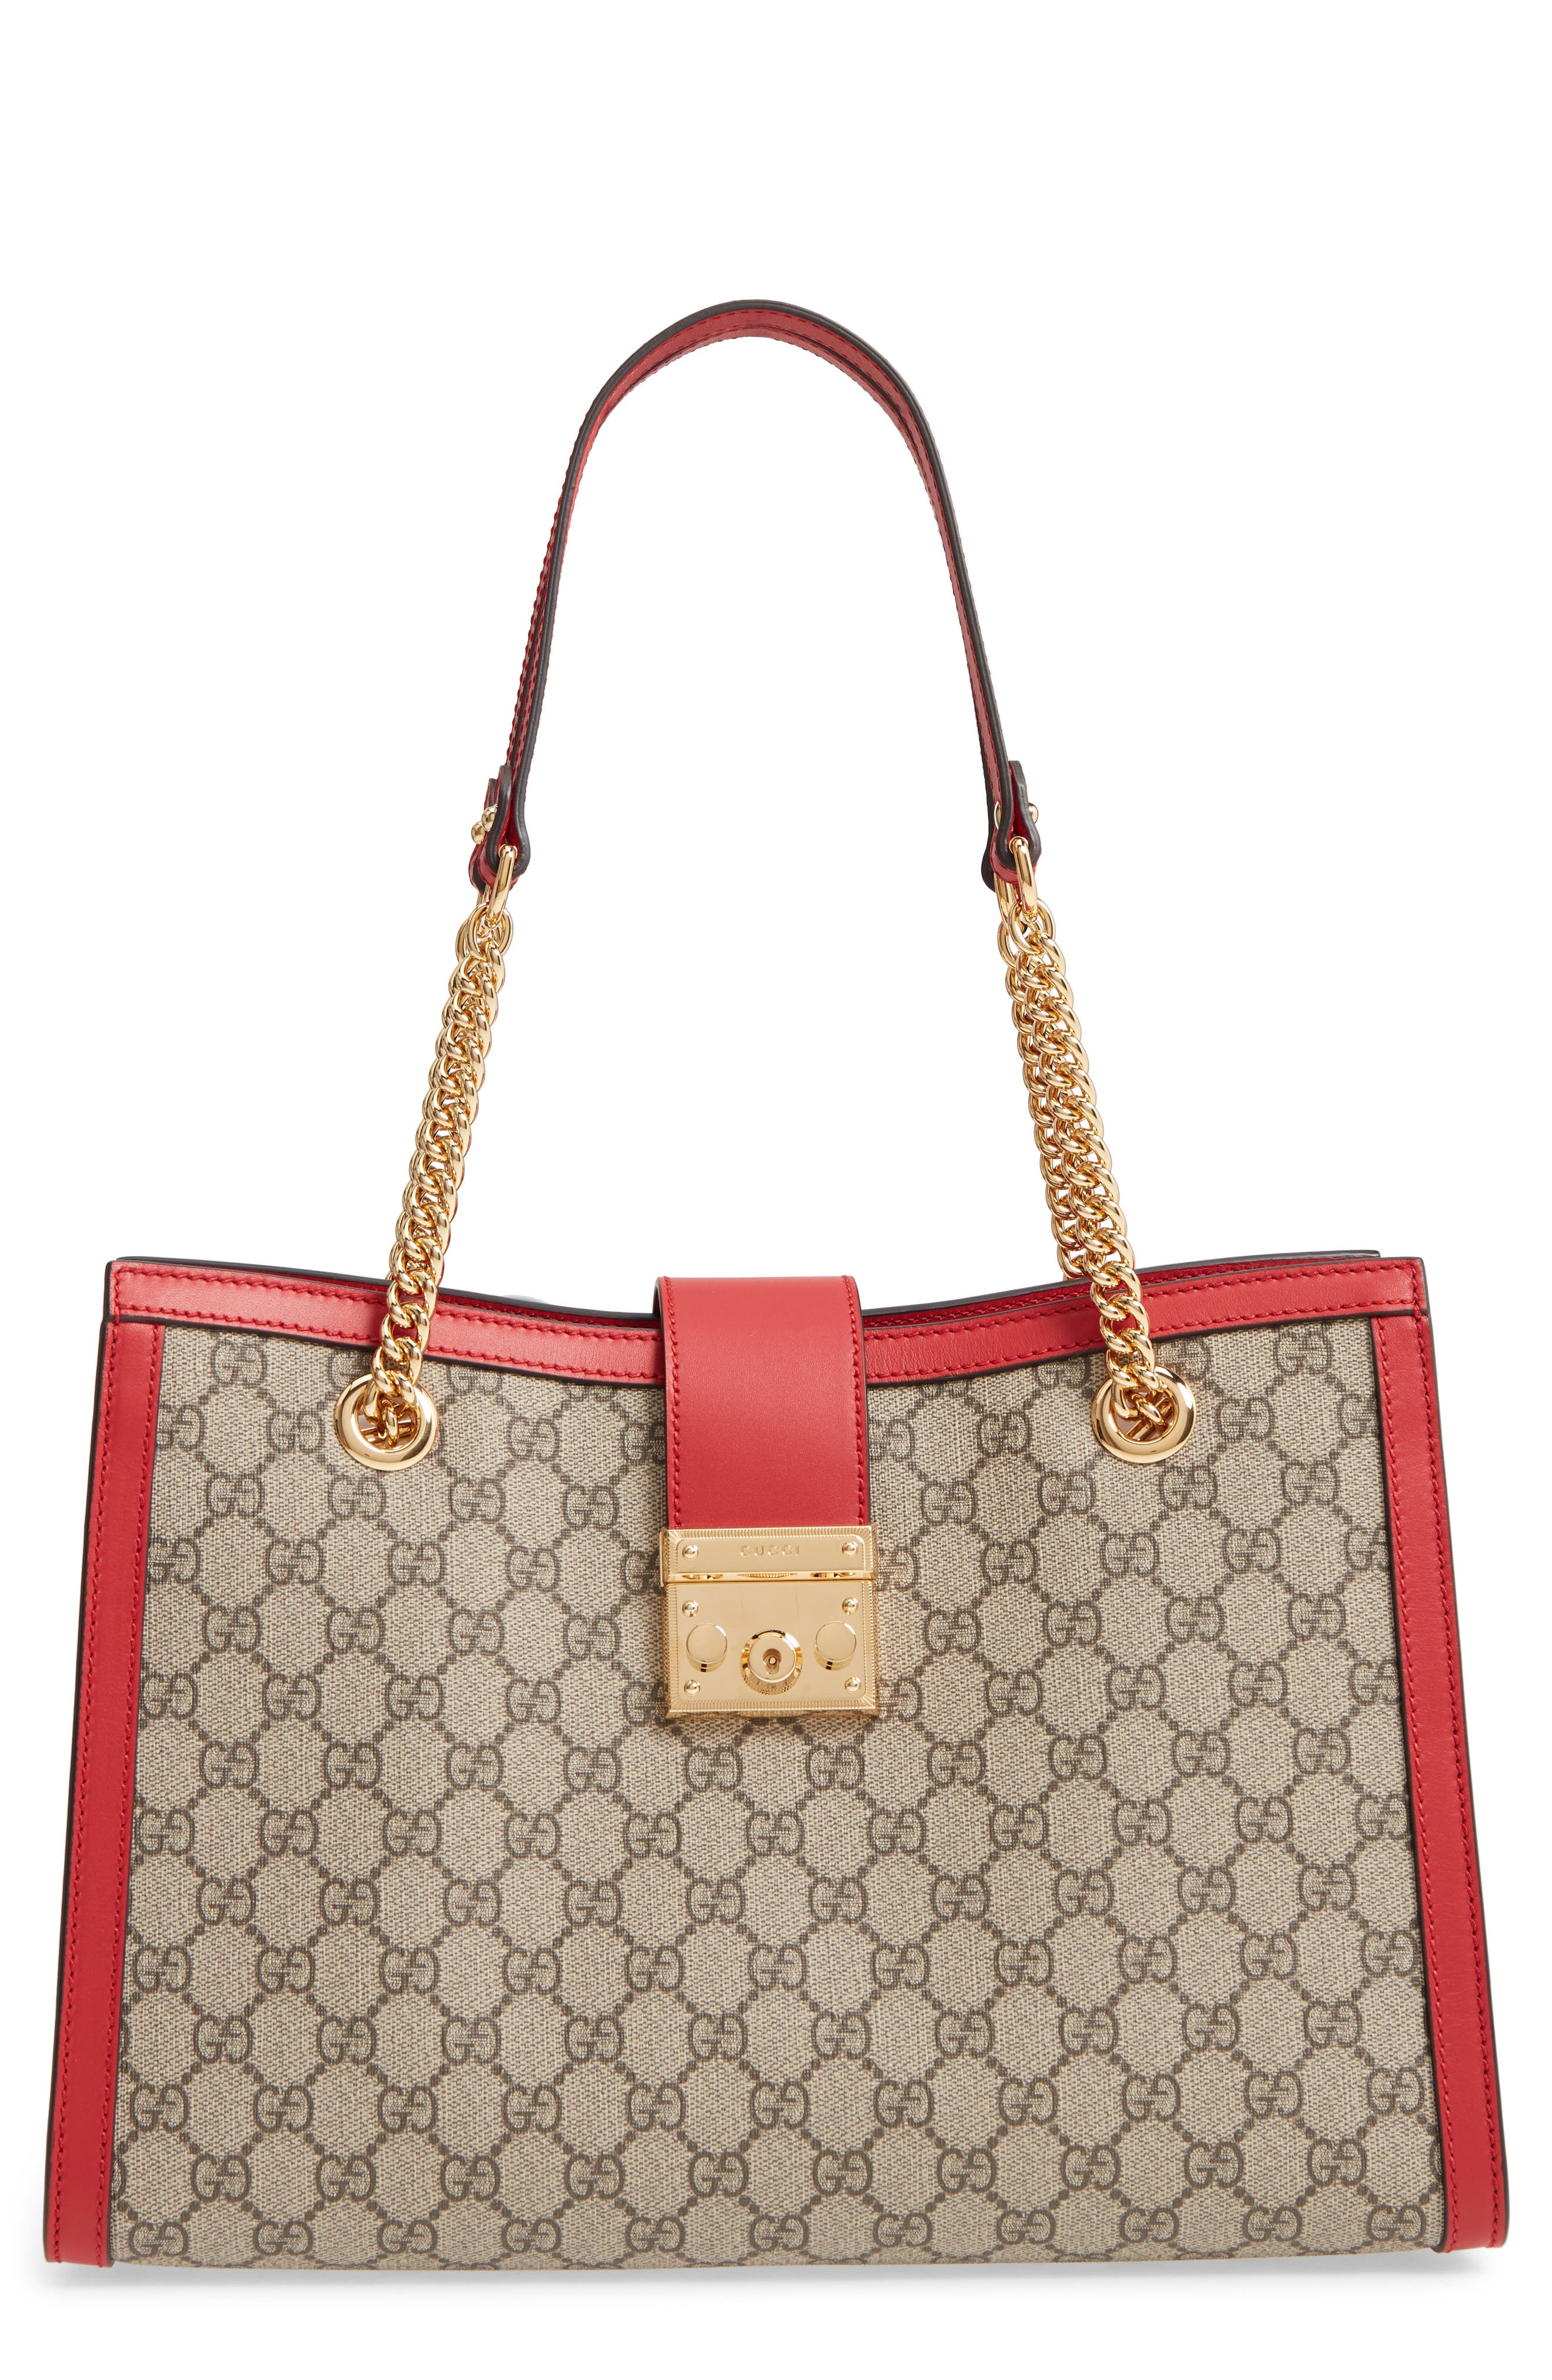 Medium Padlock GG Supreme Canvas Tote,                             Main thumbnail 1, color,                             283